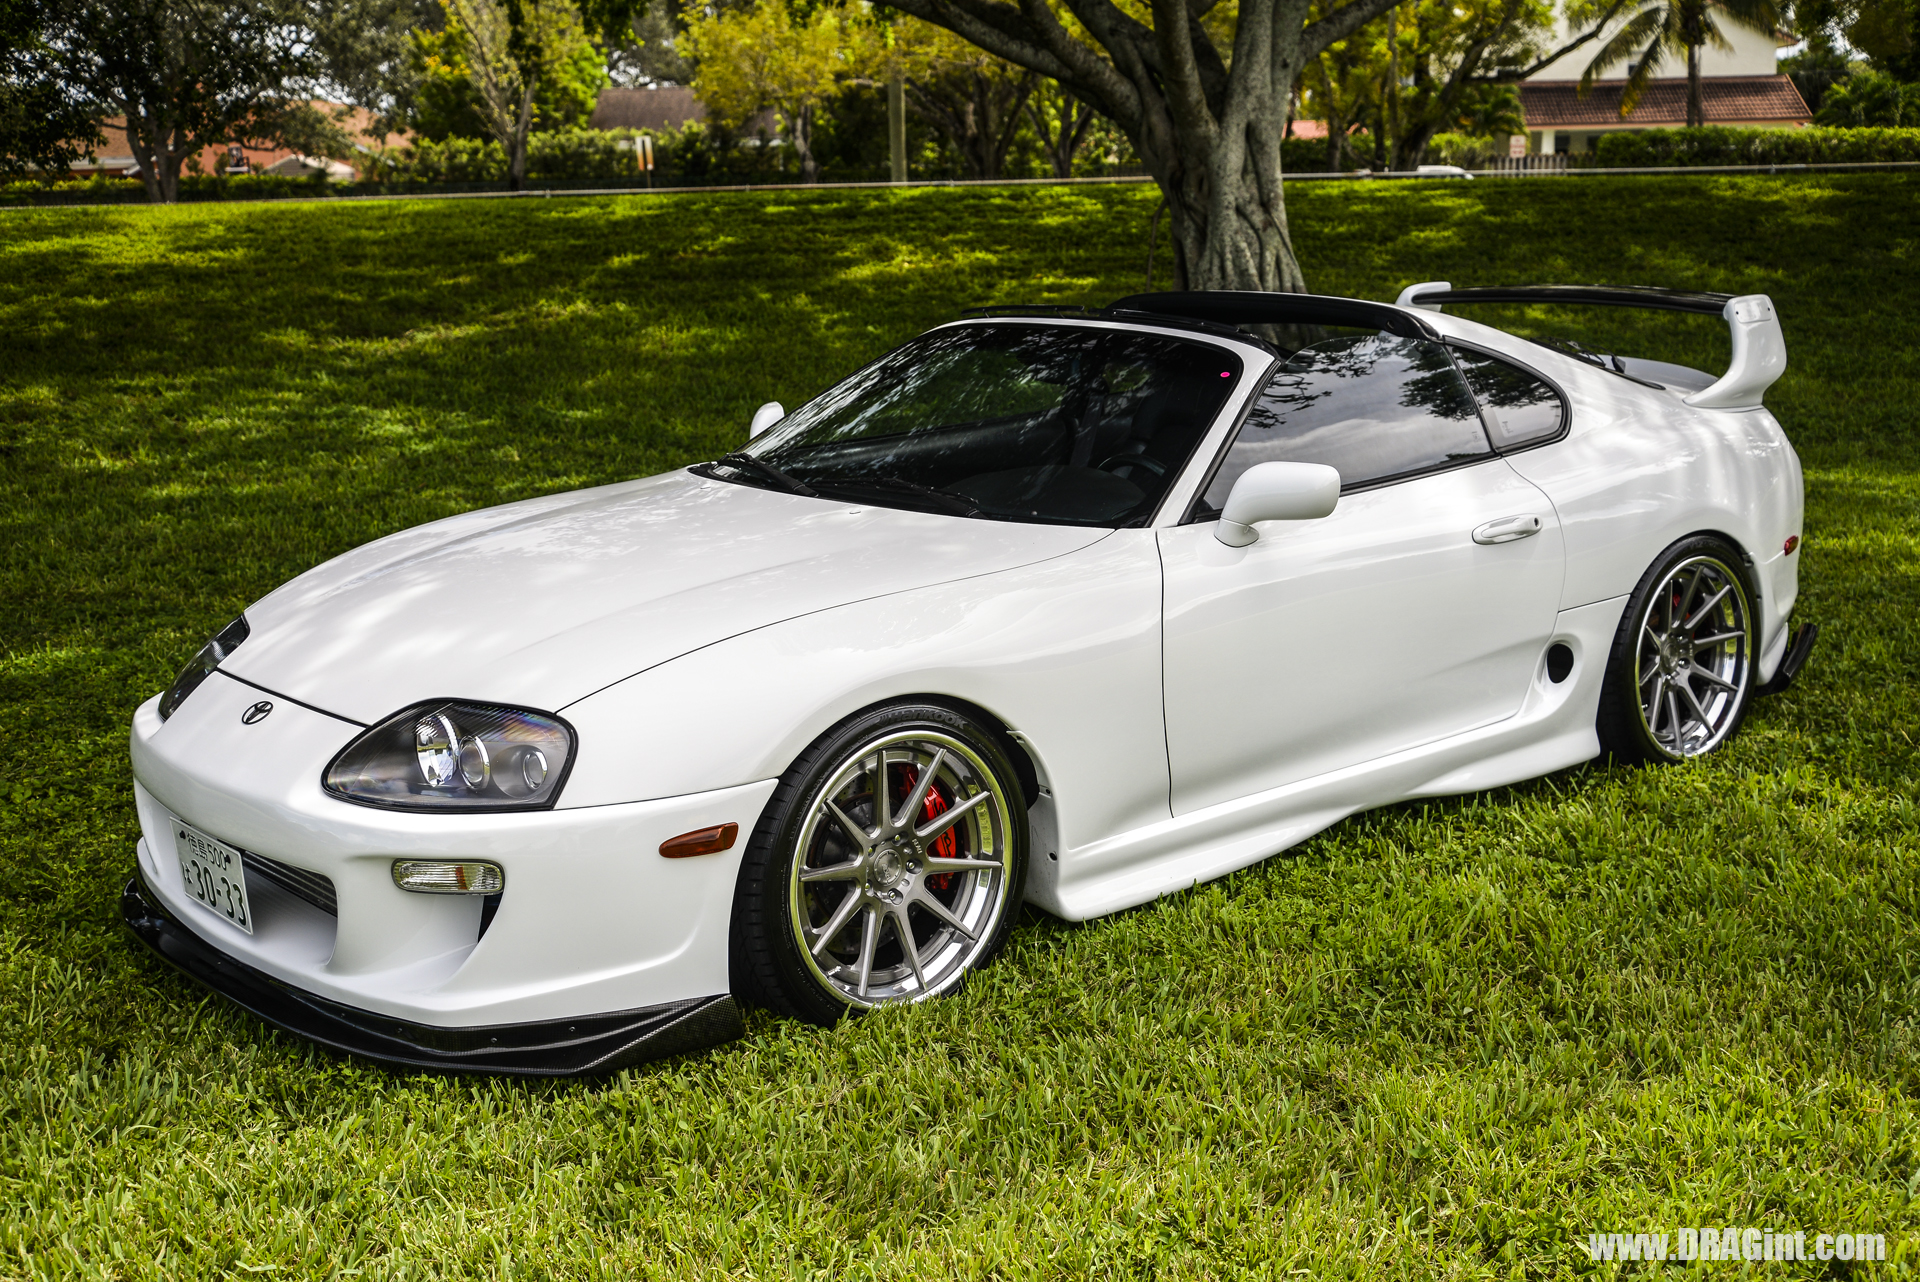 Build A Toyota >> DRAGint.com Project White Heat – Supra Turbo 6 Speed + JDM Flare + 1050 HP | DRAG International